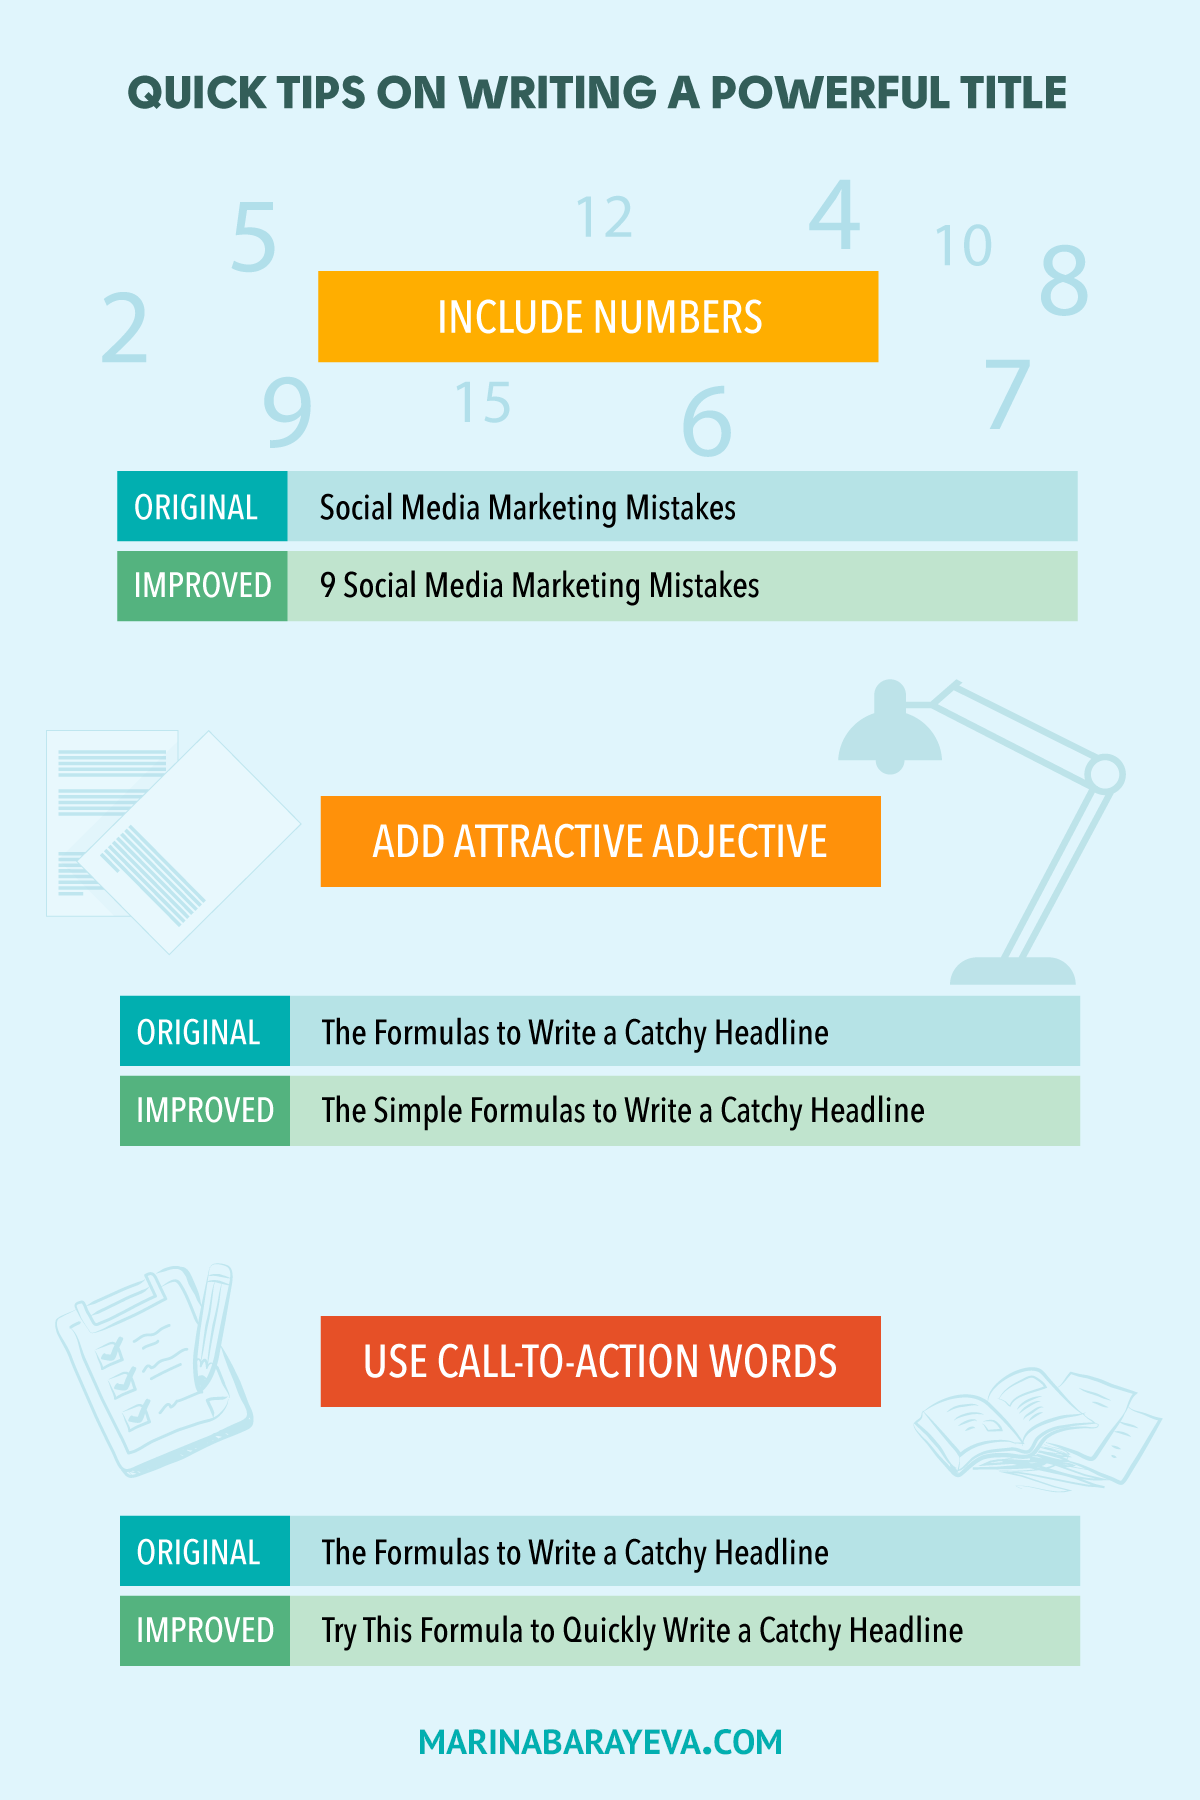 Looking for an easy way to write an attractive title for your blog post or article? Here are the quick tips on writing a powerful title. They will help you easily to write an attractive title for a blog post or social media message. #blogging #contentmarketing #bloggingtips #creativeentrepreneur #socialmedia #socialmediatips #socialmediamarketing #smm #copywriting #writing